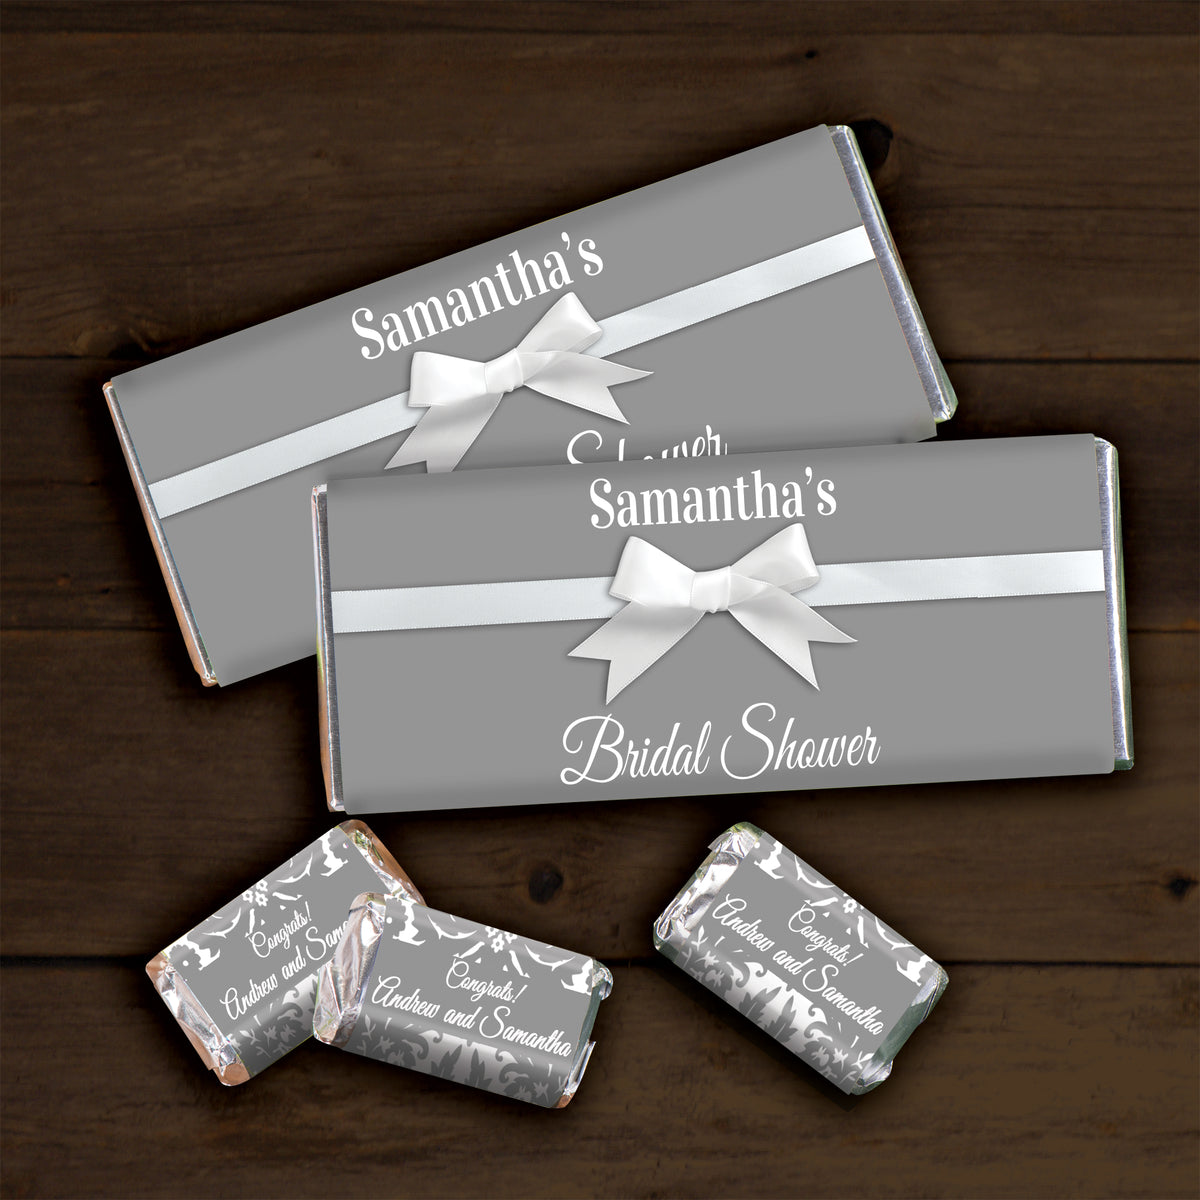 Hershey's Chocolate Cheers to You Gold 50 Personalized Candy Bars